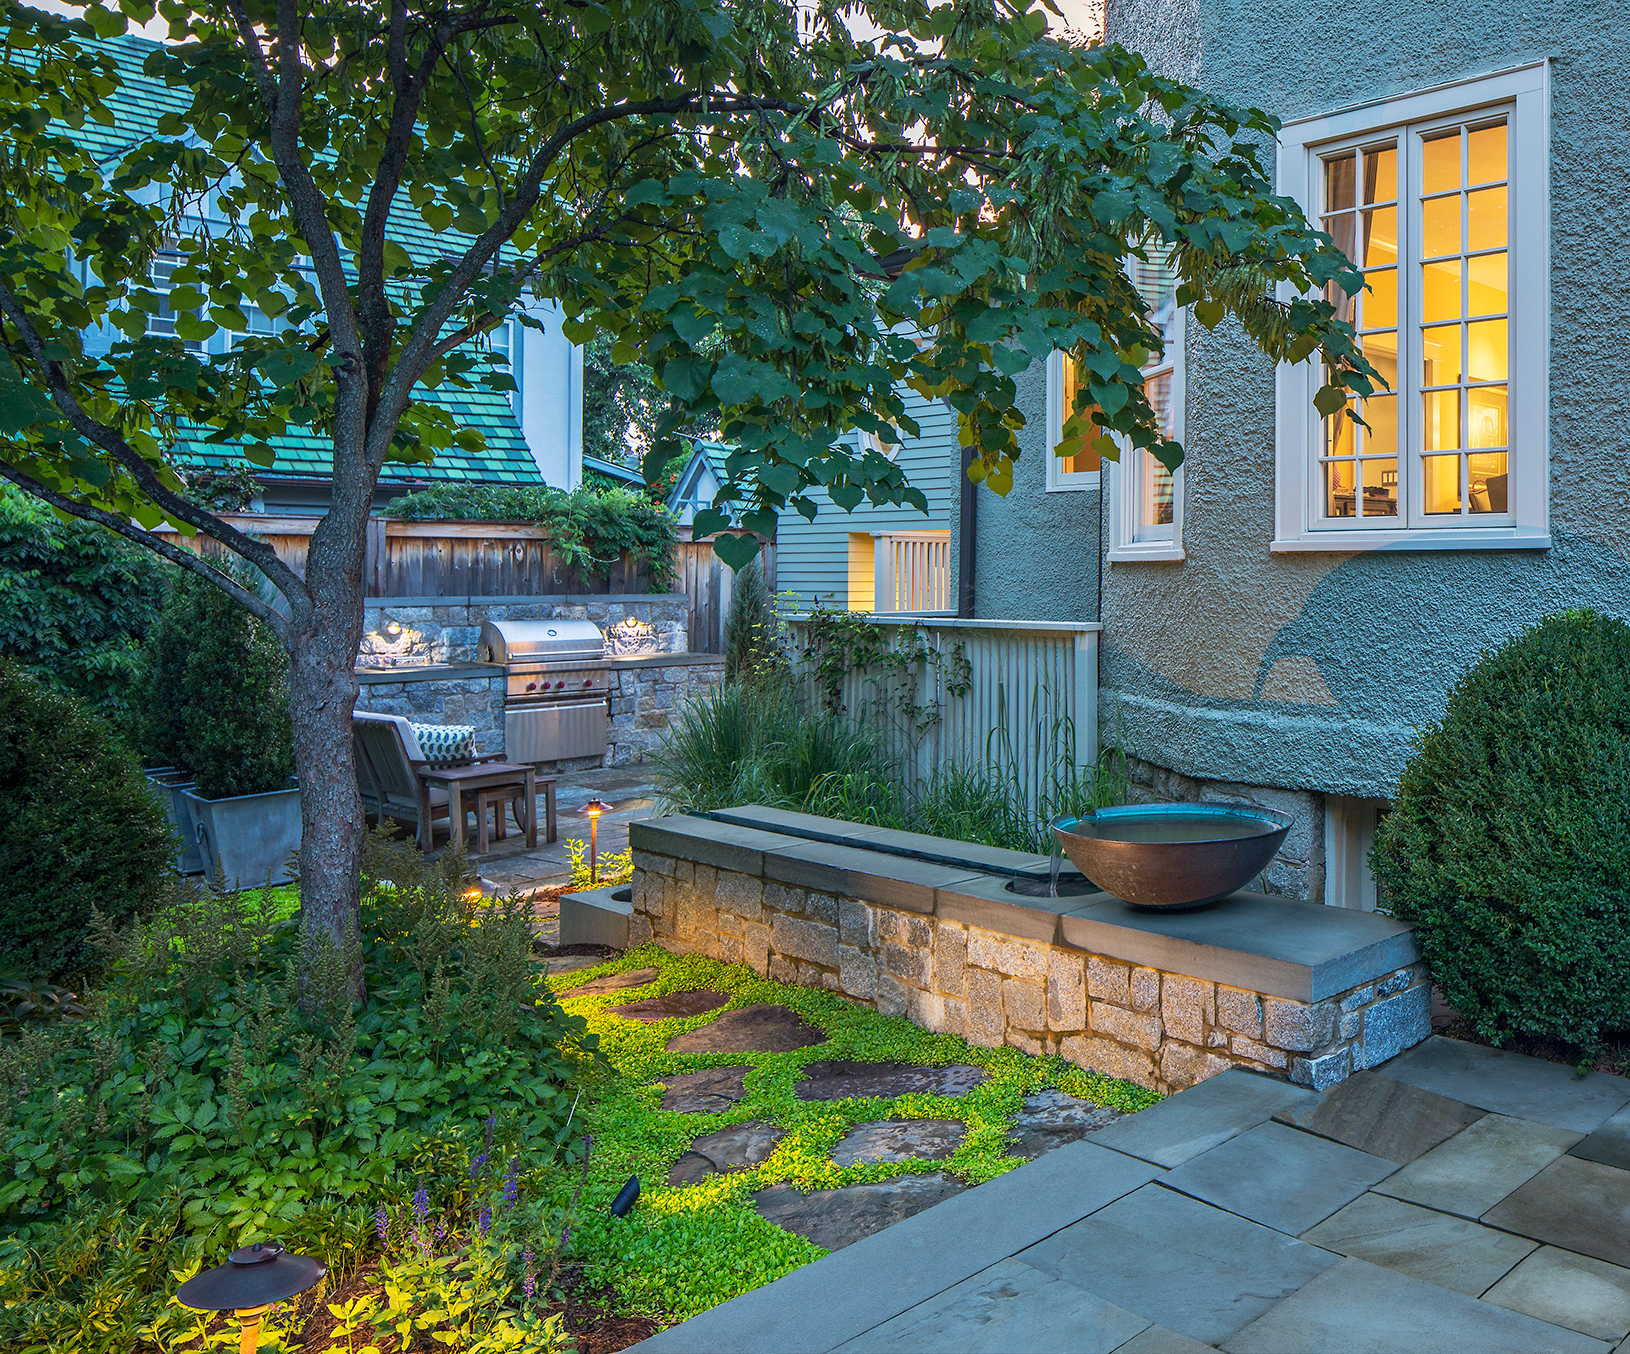 Landscape Architecture Photographs – Washington DC, Maryland, MD, Virginia, VA